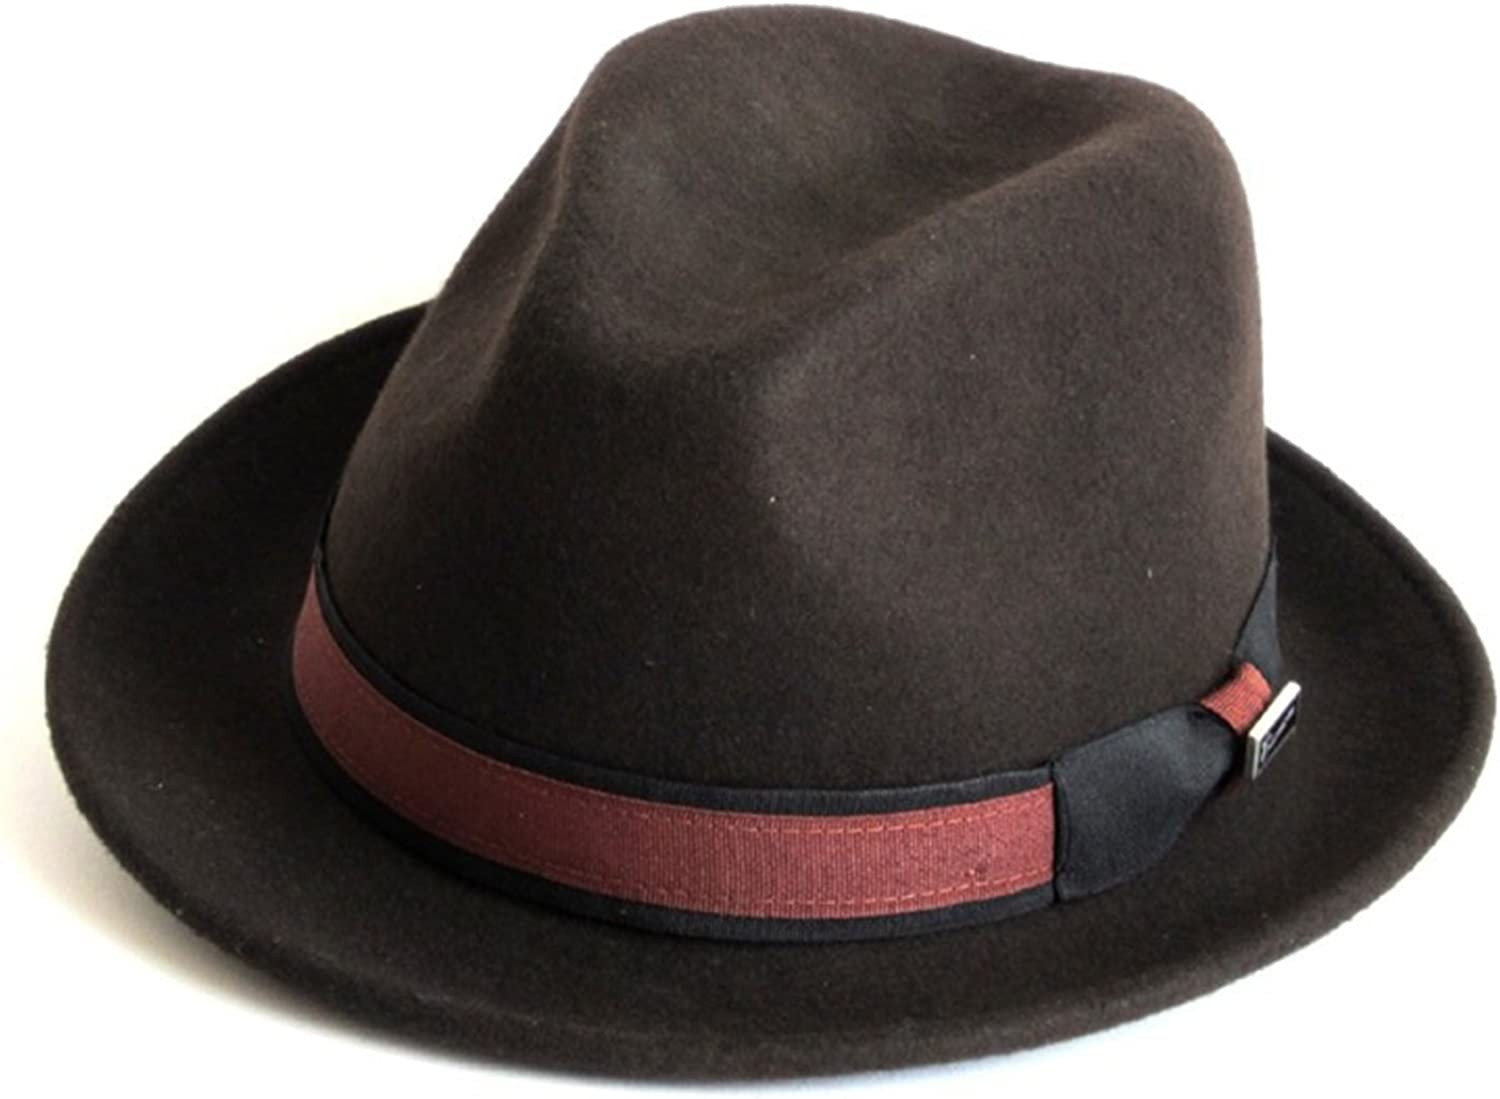 Dasmarca Winter Crushable Packable Twotone Felt Fedora Hat